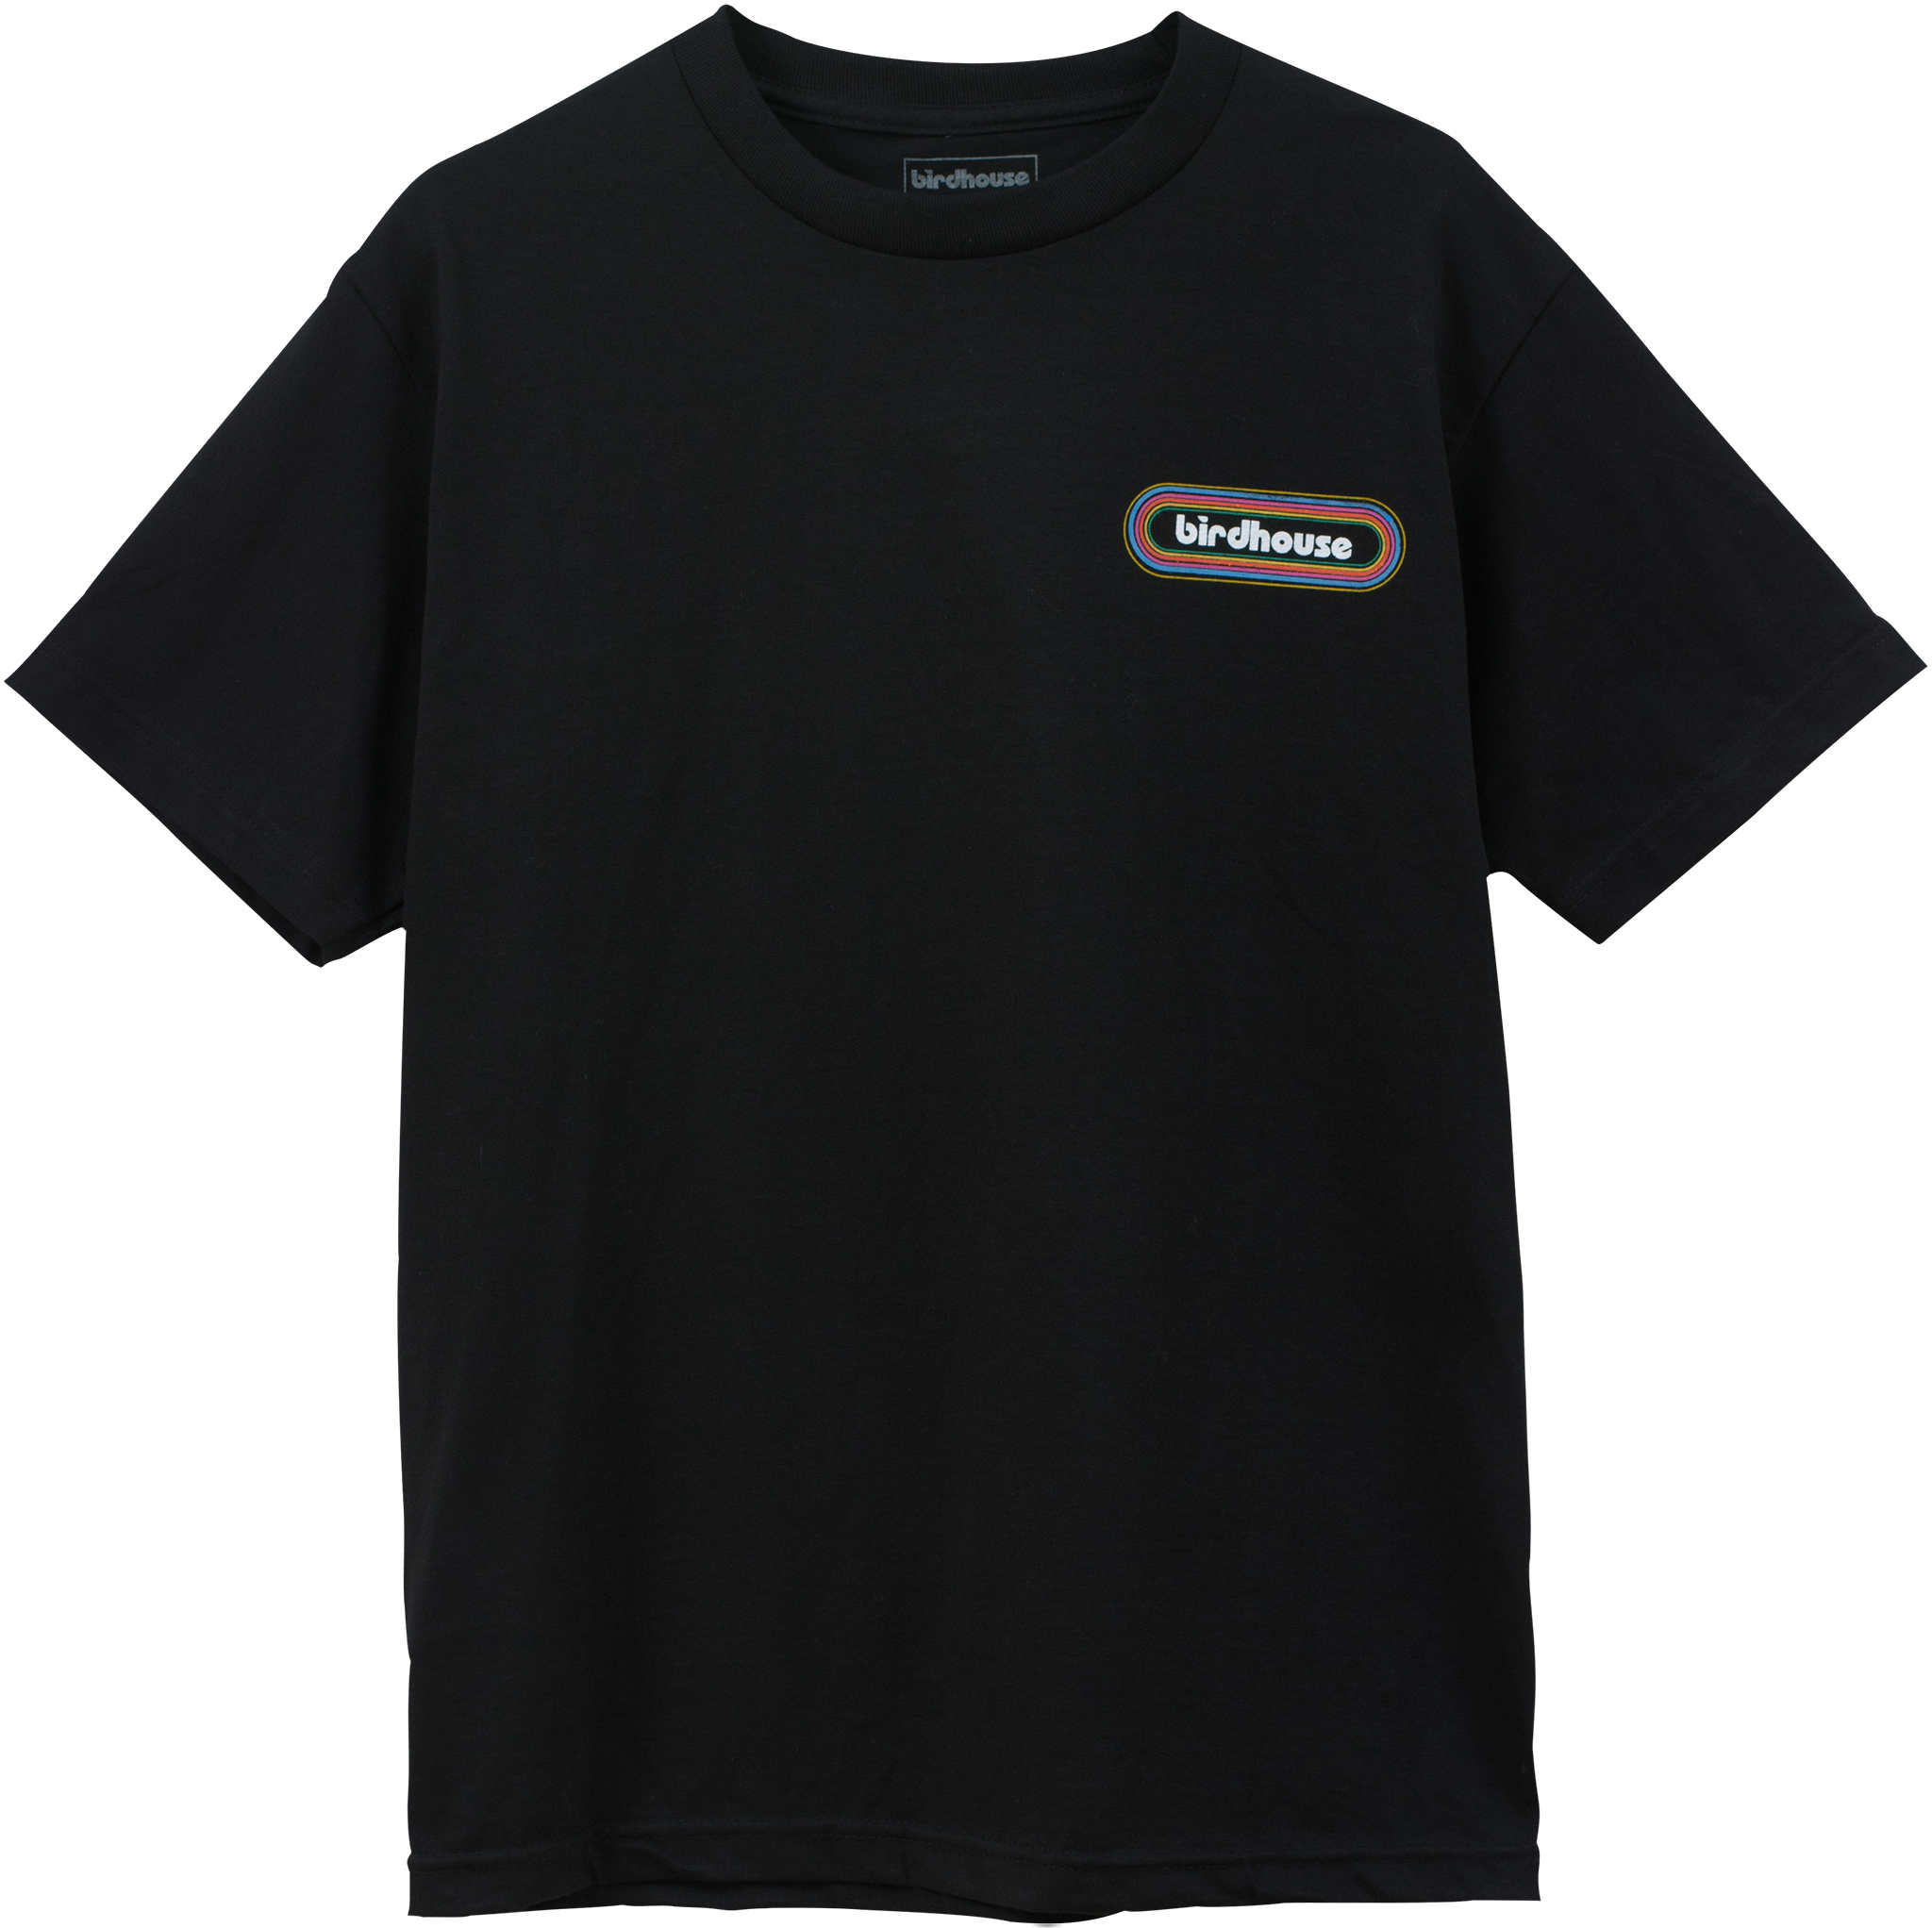 Favorite BIRDHOUSE - SHIRTS - 3D LOGO TEE - BLACK - BIRDHOUSE SKATEBOARDS LI49